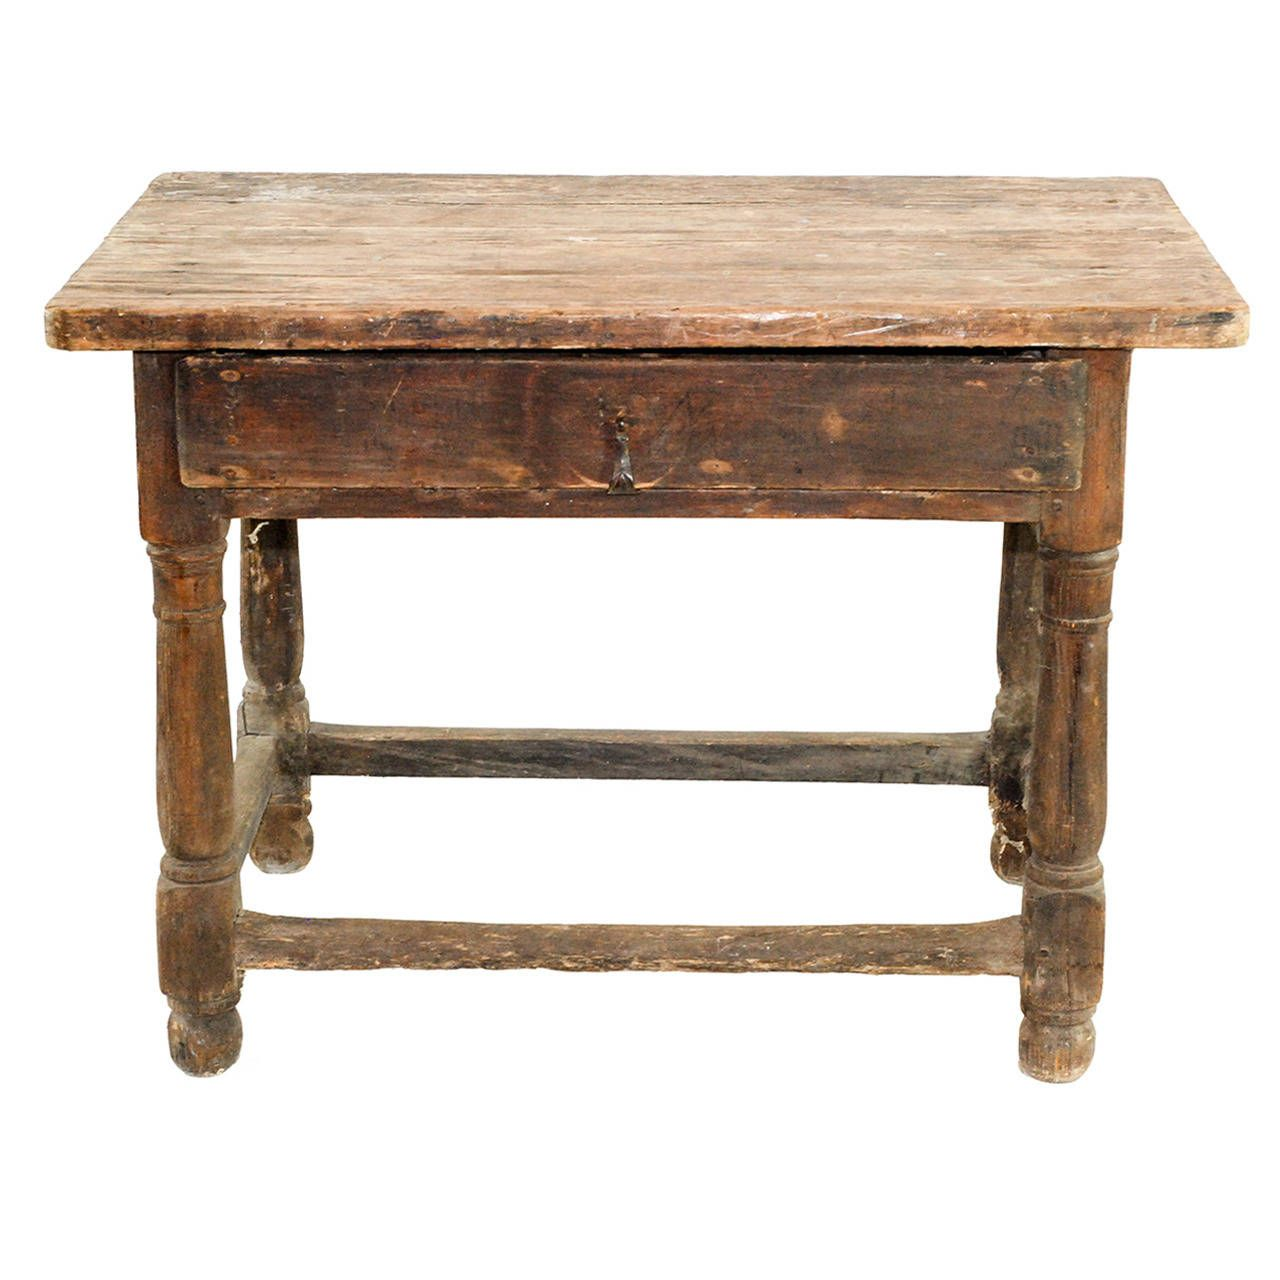 19th C. Farm Table | From a unique collection of antique and modern farm tables at https://www.1stdibs.com/furniture/tables/farm-tables/